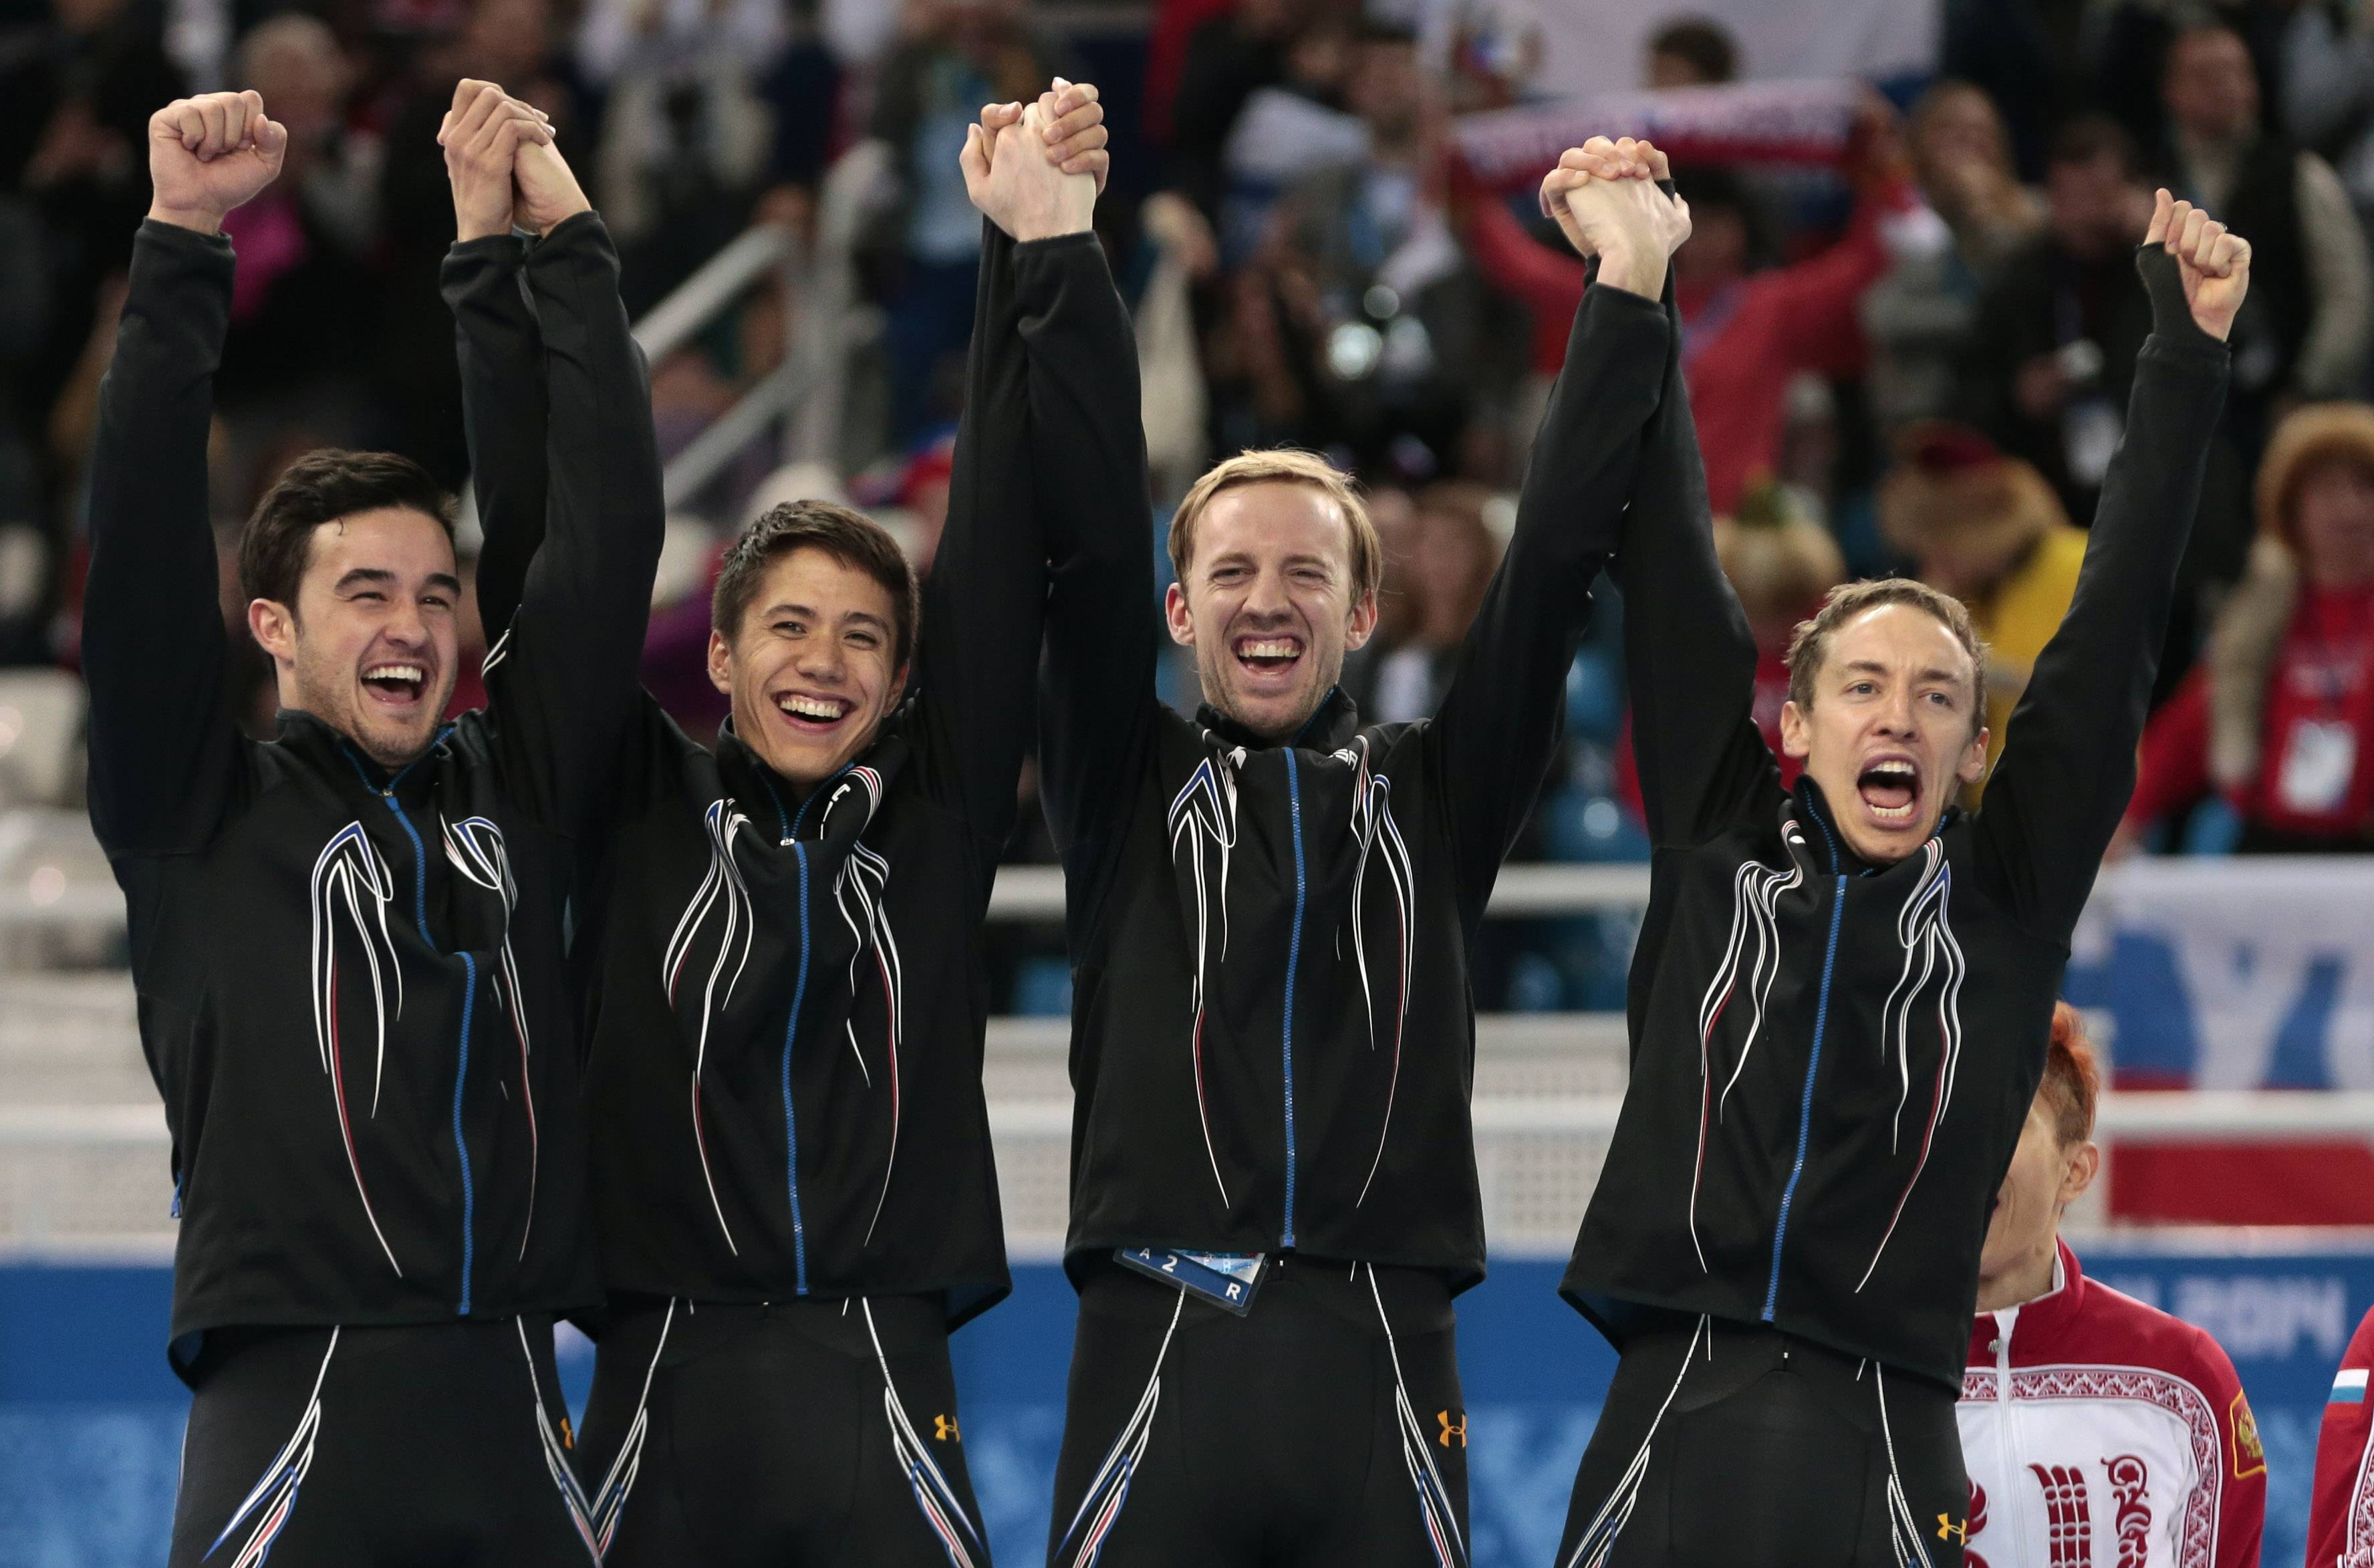 Members of U.S. team celebrate on the podium Friday after receiving their silver medals for the 5000-meter short track speedskating relay in Sochi.